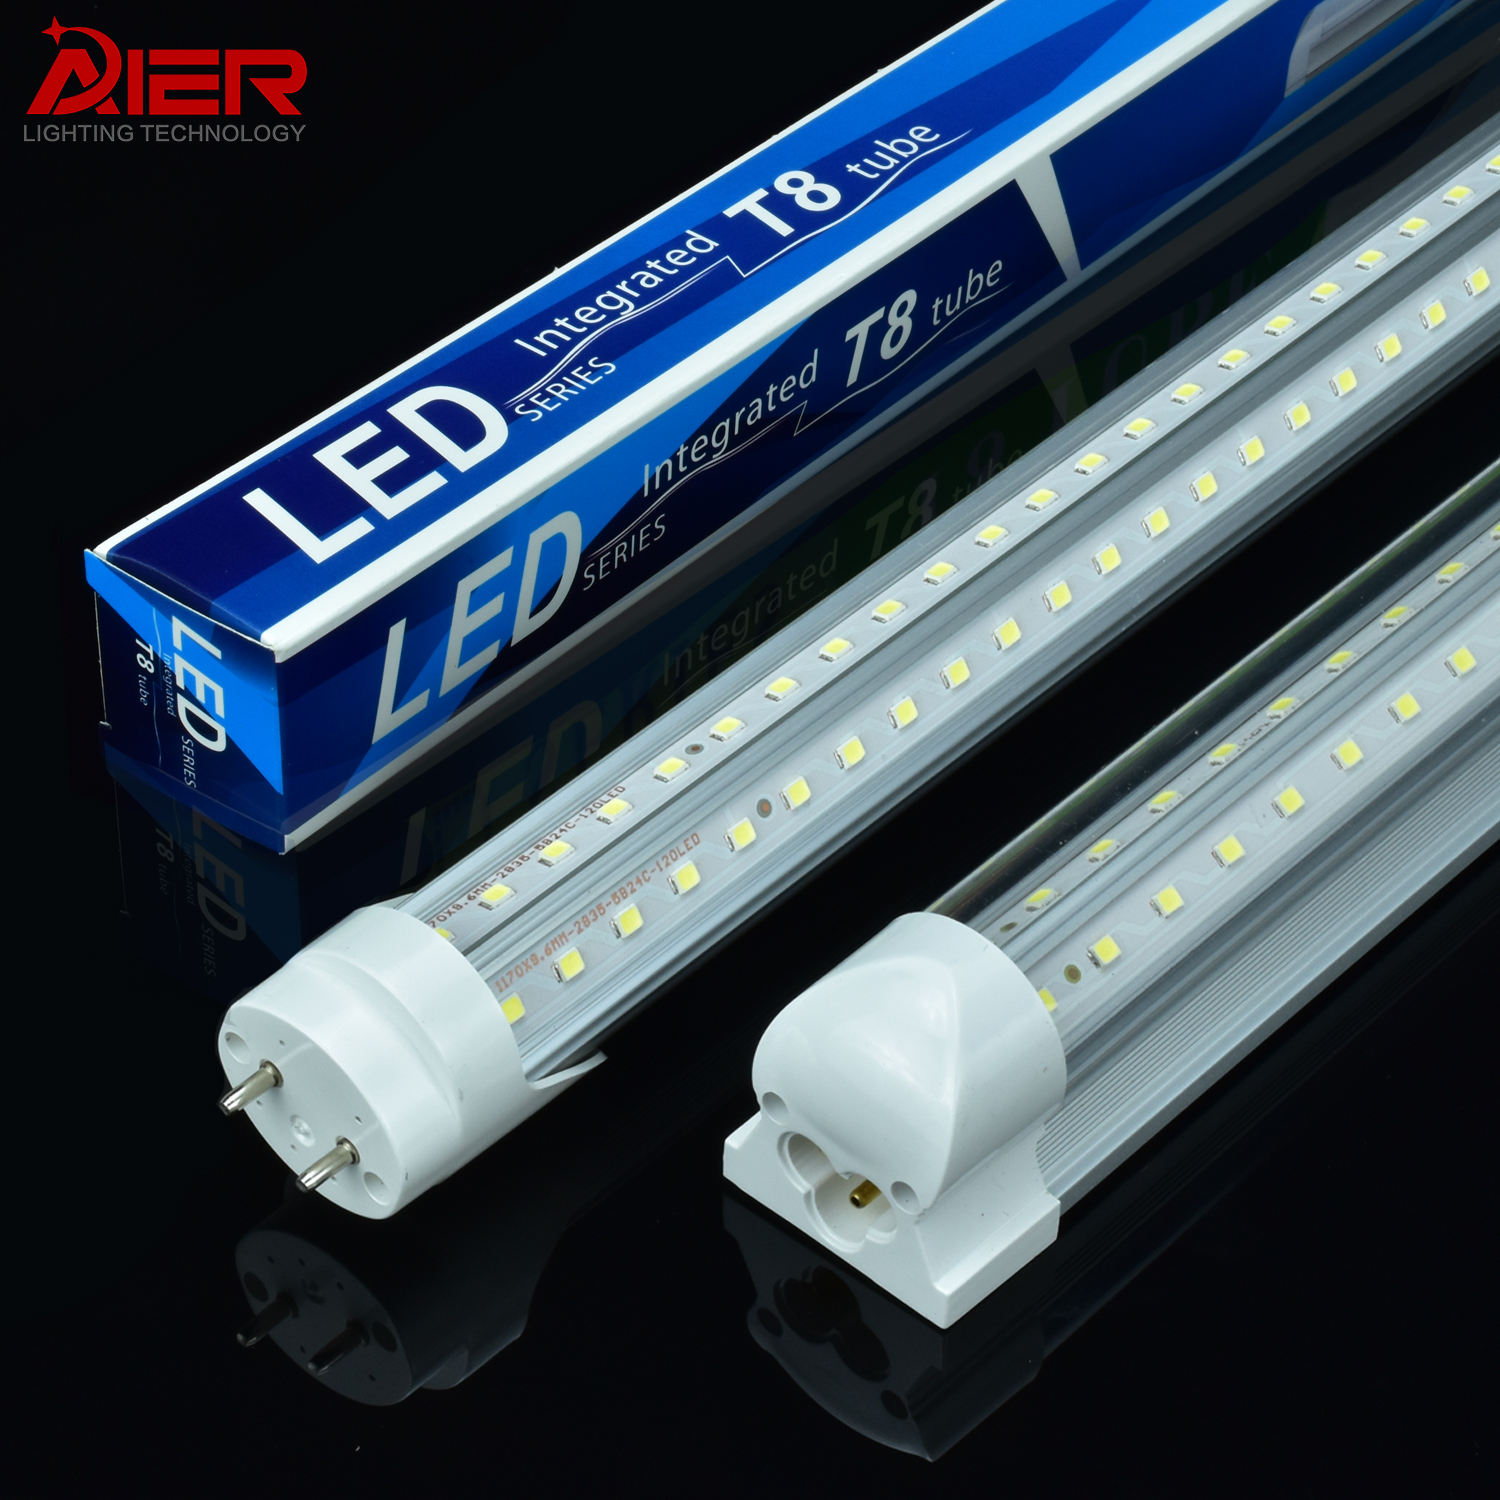 Super Bright OEM&ODM Indoor Lighting V Shaped Aluminum Shop Lights 4FT 8FT Integrated T8 Led Tube Light